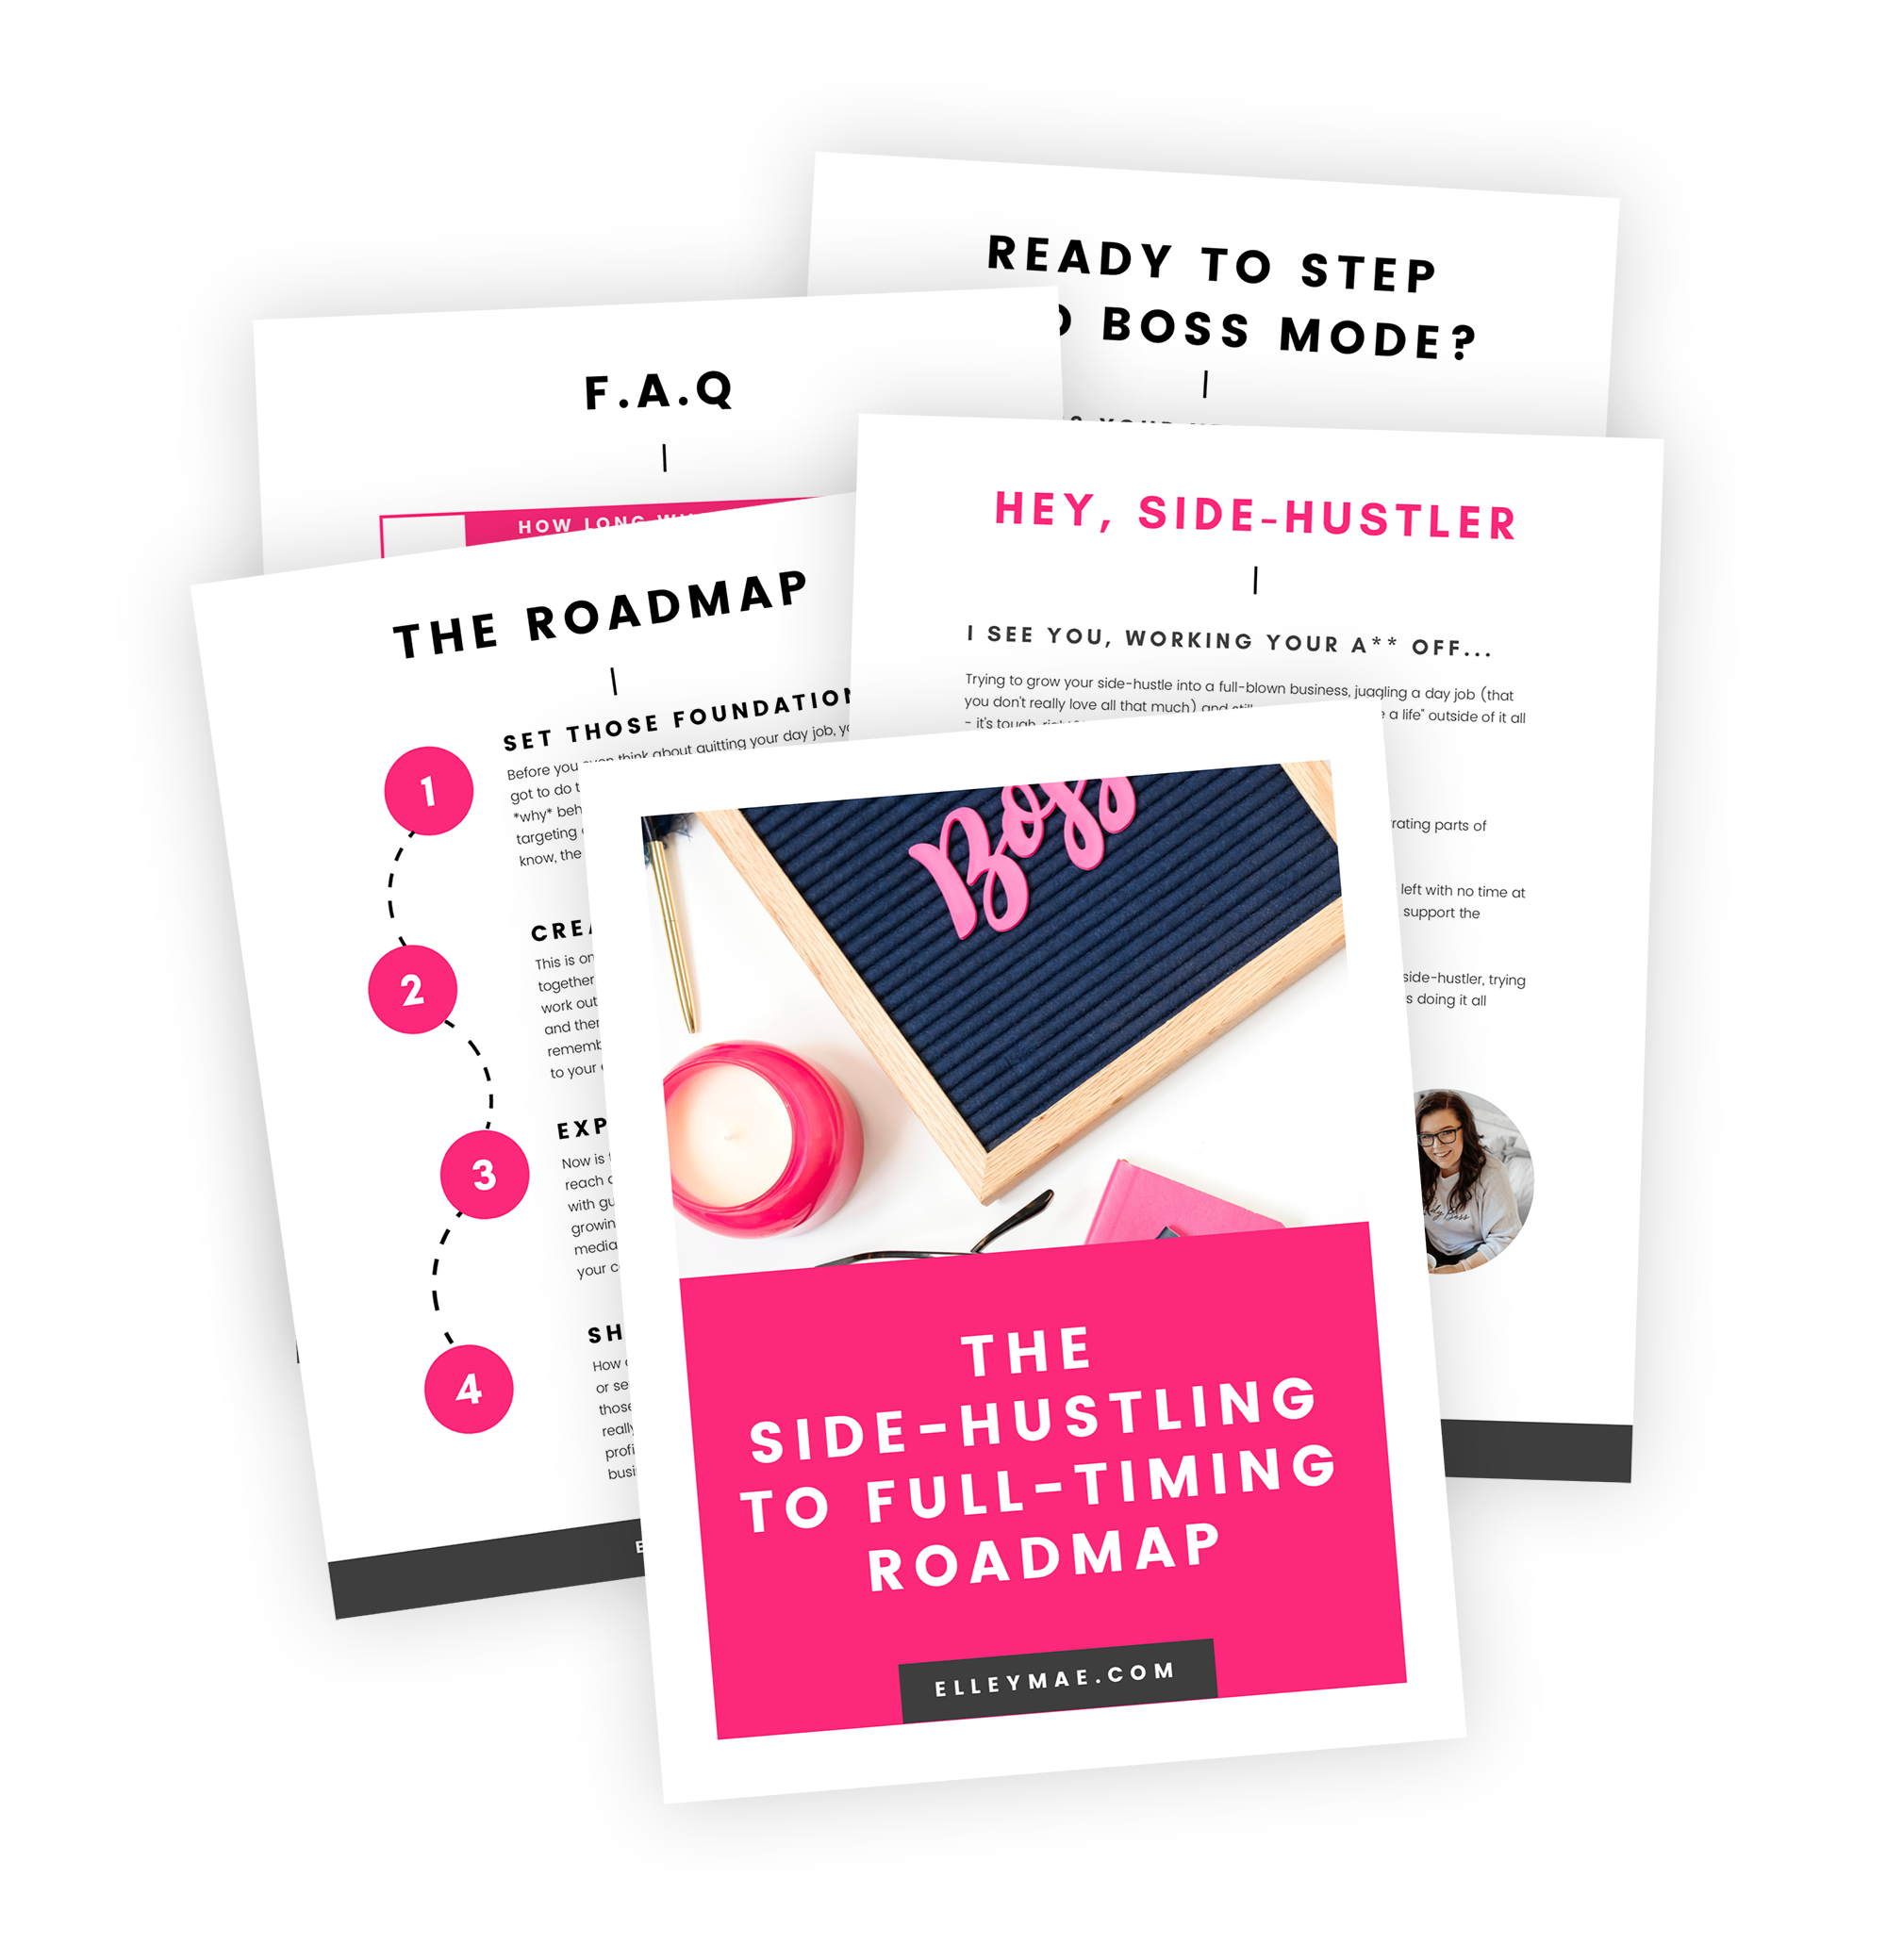 Are you ready to take your side-hustle full-time? Do you want to quit your 9-5 and work from home? Girl, I hear you! Download The Side-Hustling to Full-Timing Roadmap now to skyrocket your success and *finally* quit your day job to pursue your passion! I quit my day job in less than 12 months and now make a living helping other ladies to do the same! | Work From Home, Quit Your Day Job, Quit Your 9-5, Side-Hustle, Full-Time Blogger, Full-Time Entrepreneur, Digital Nomad | ElleyMae.com